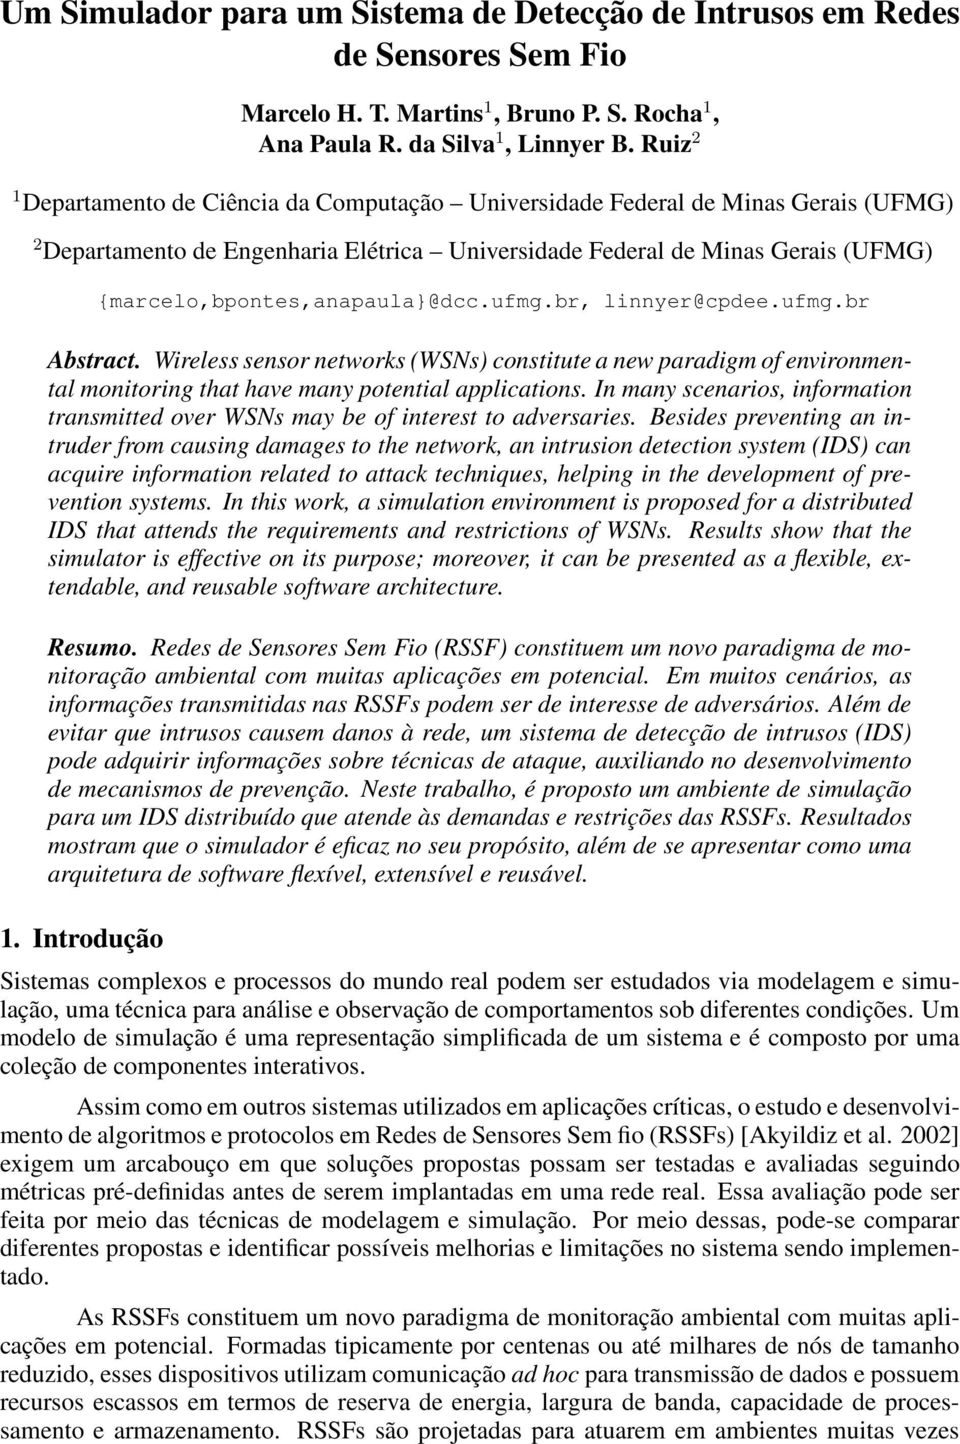 {marcelo,bpontes,anapaula}@dcc.ufmg.br, linnyer@cpdee.ufmg.br Abstract. Wireless sensor networks (WSNs) constitute a new paradigm of environmental monitoring that have many potential applications.